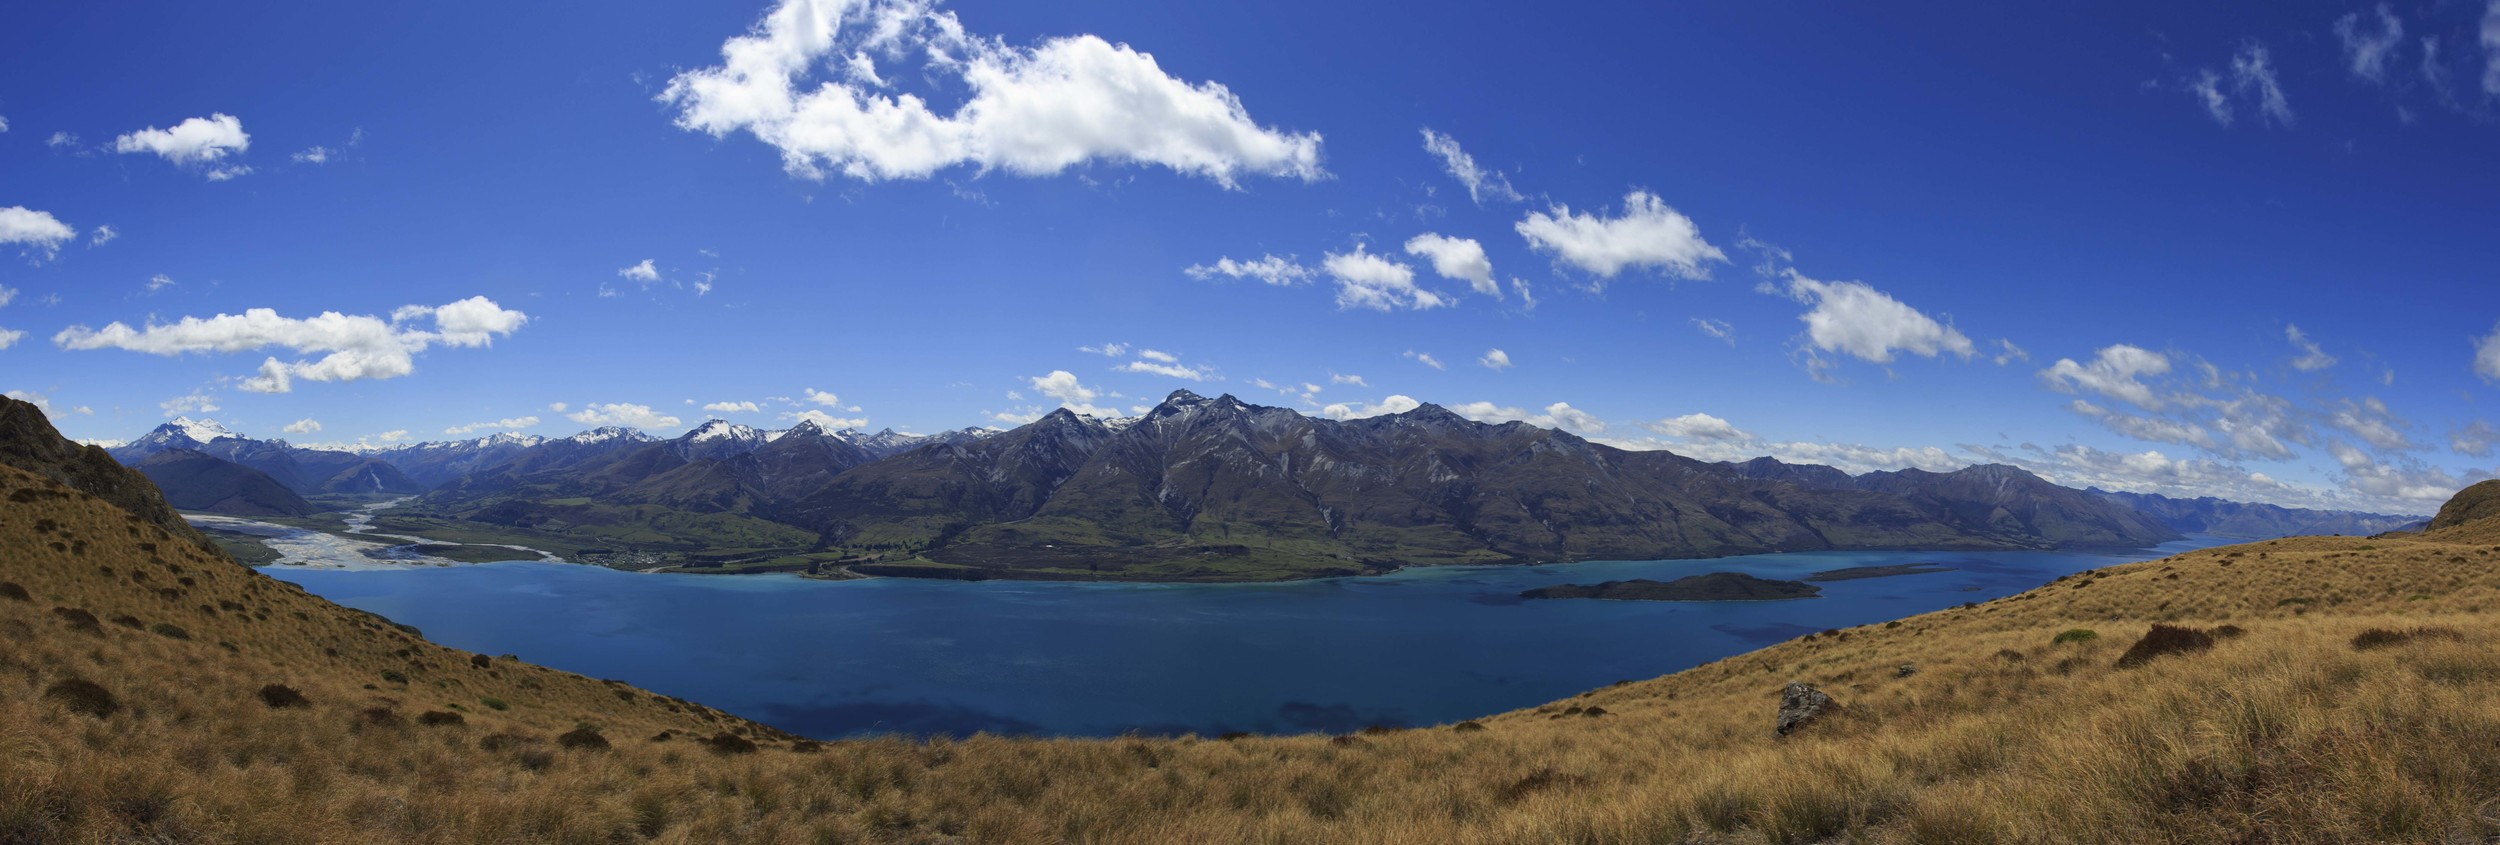 New Zealand Panoramaweb.jpg